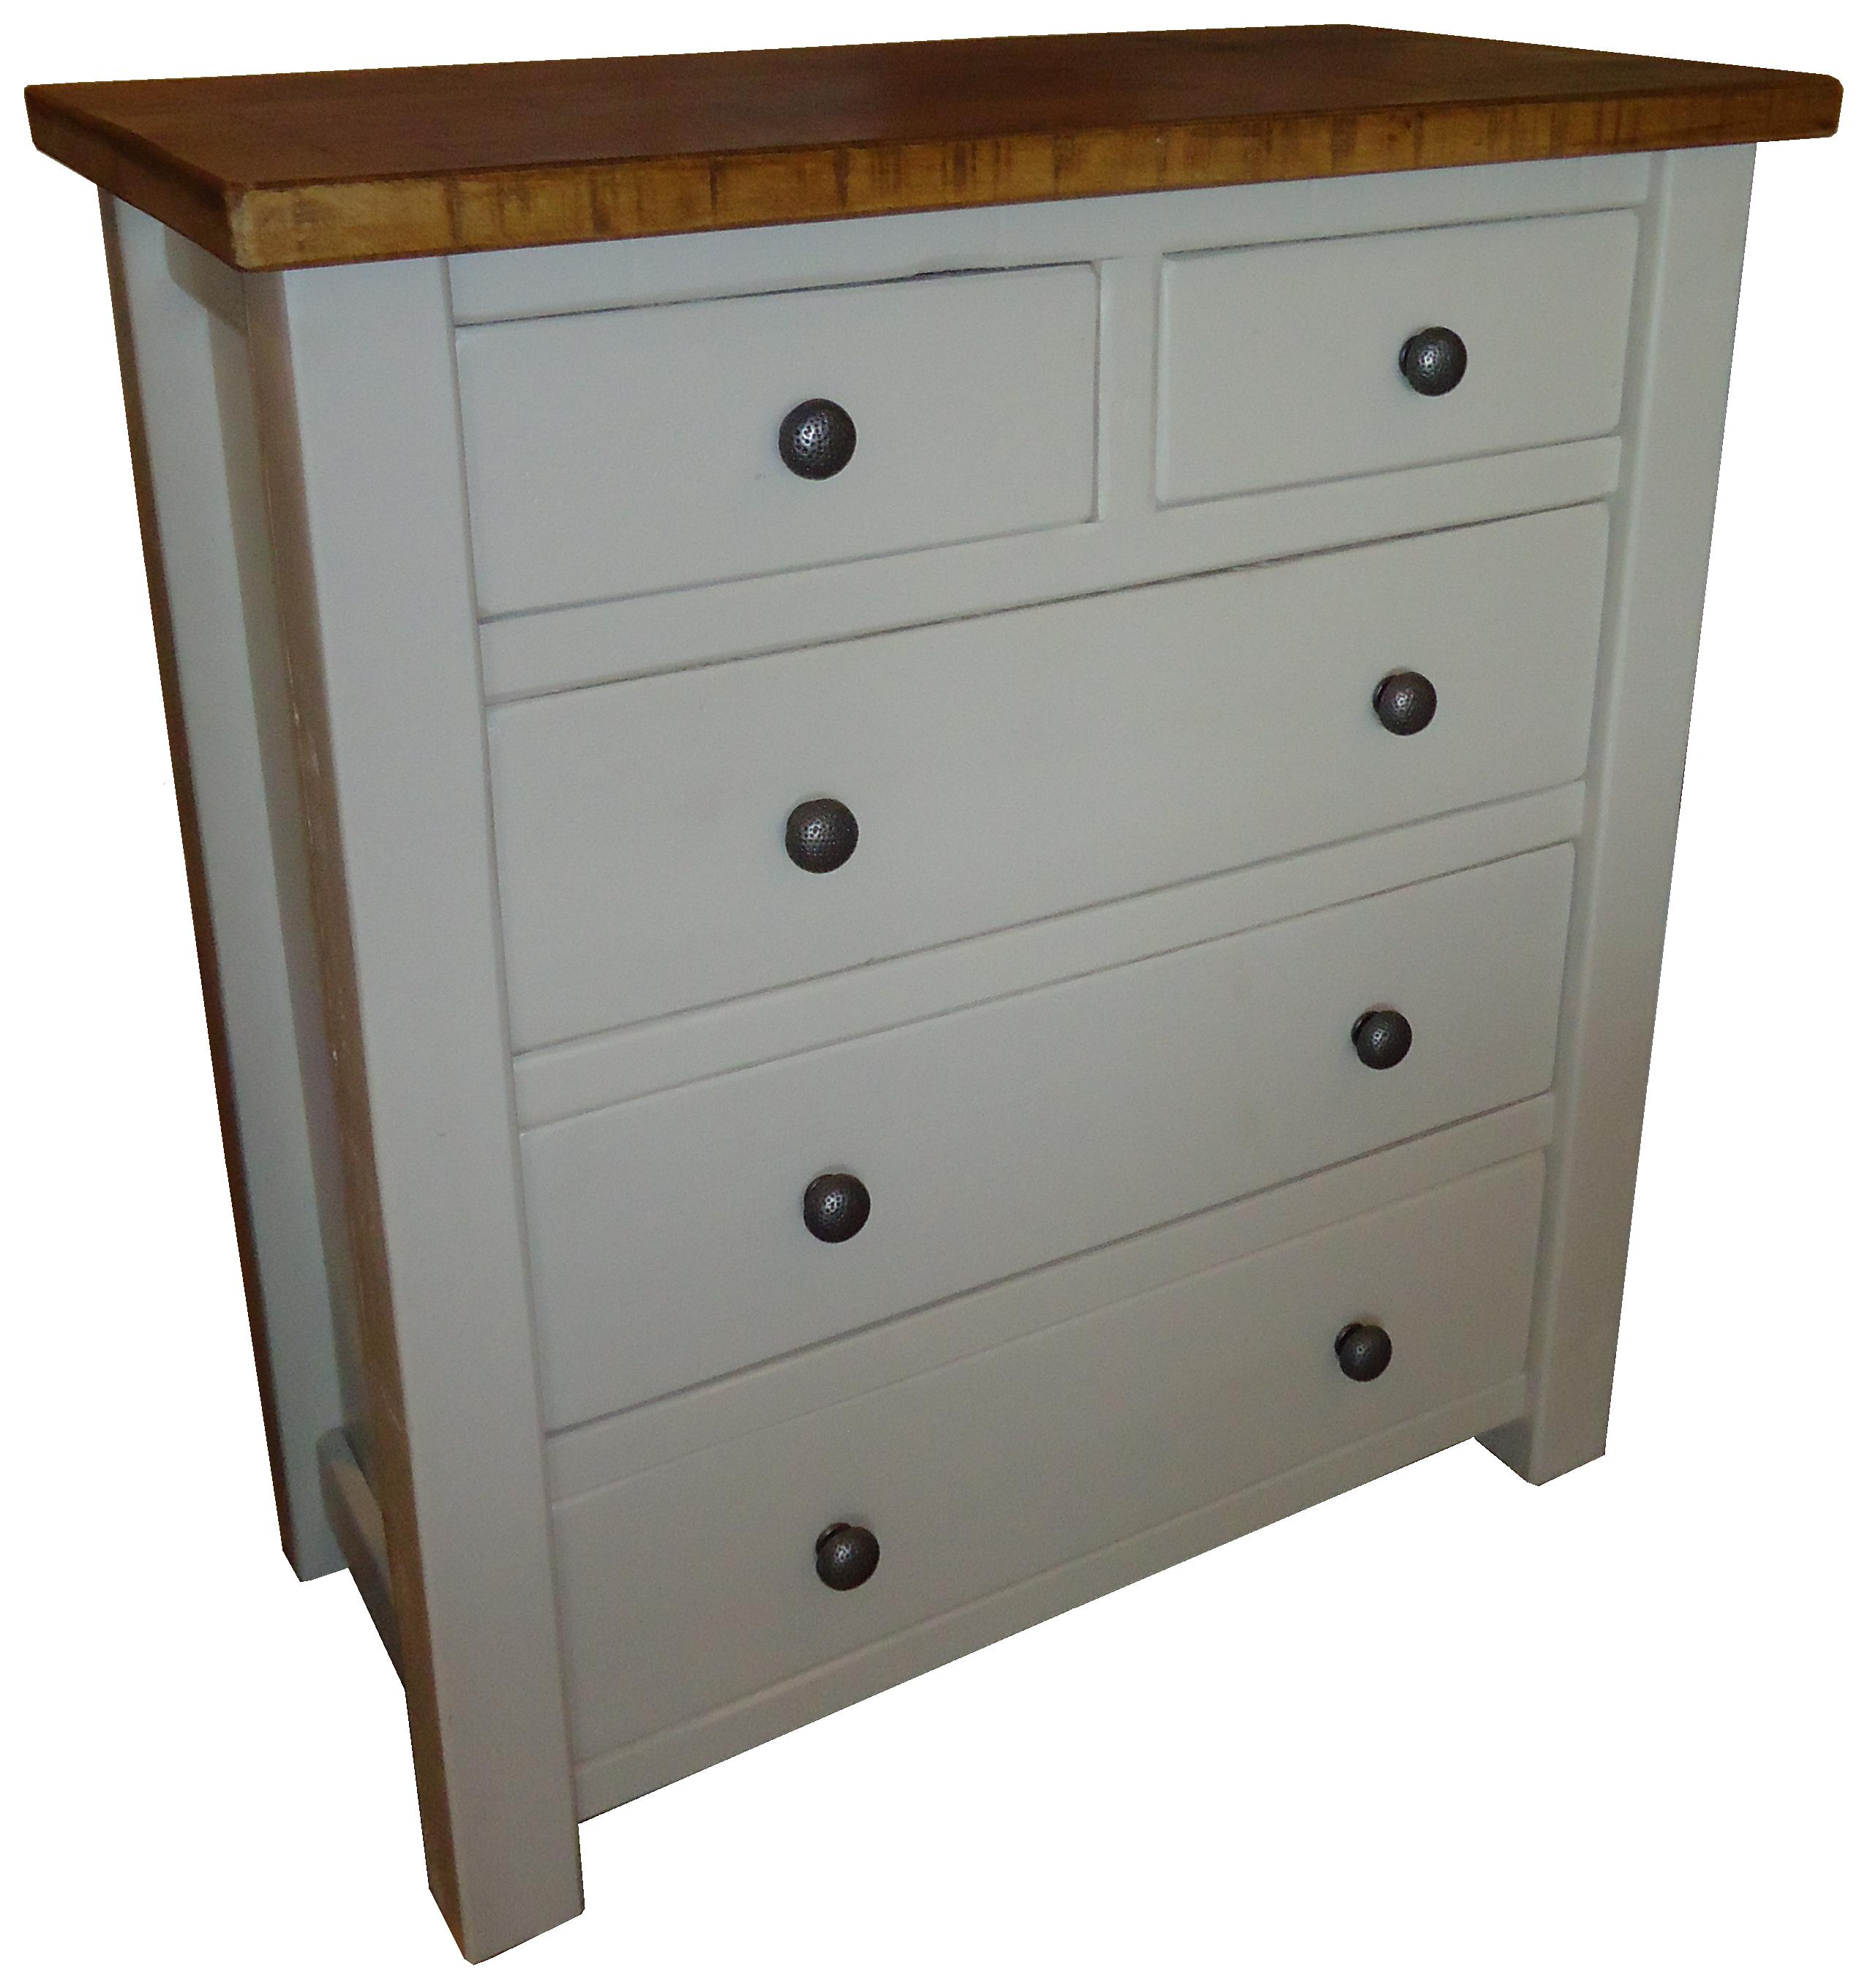 memphis furniture item home number cupboard trisha by chest drawer klaussner products collection b yearwood